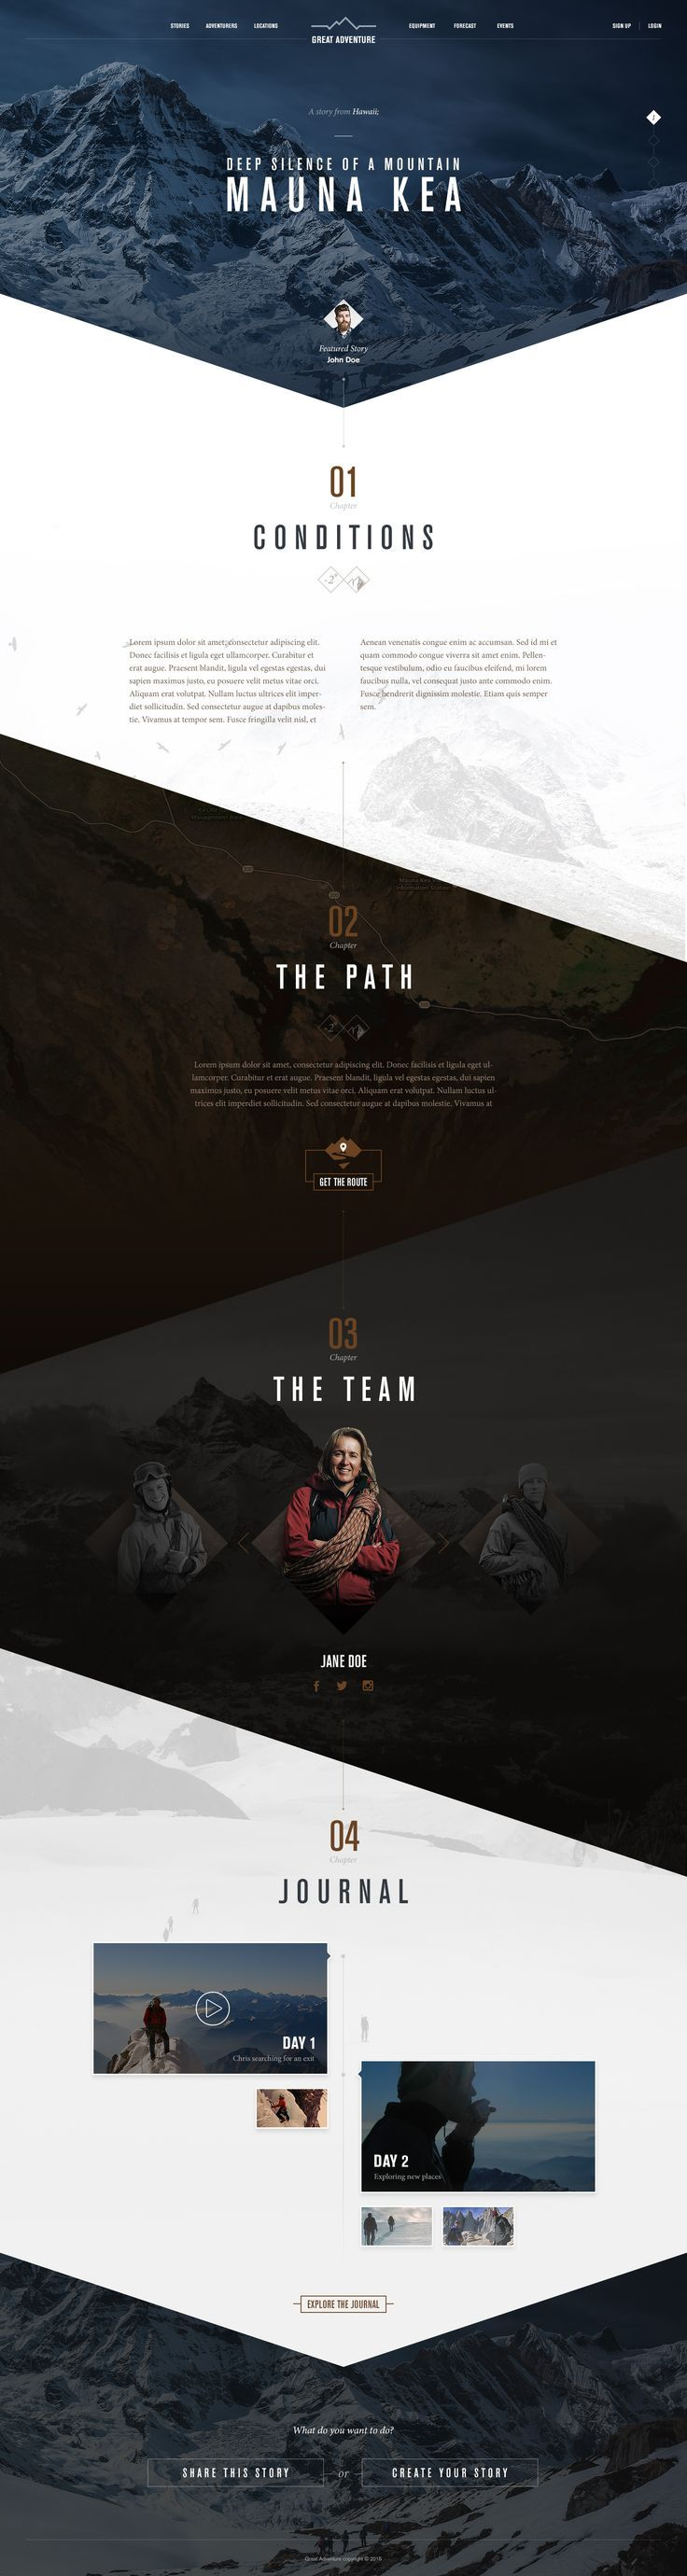 Great Adventure by Tansel Turunz| Weekly web design Inspiration for everyone! Introducing Moire Studios a thriving website and graphic design studio. Feel Free to Follow us @MOIRE to see more remarkable pins like this. Or visit our website www.moirestudiosj... to learn more about us. #WebDesign #WebsiteInspiration #WebDesignInspiration || ||